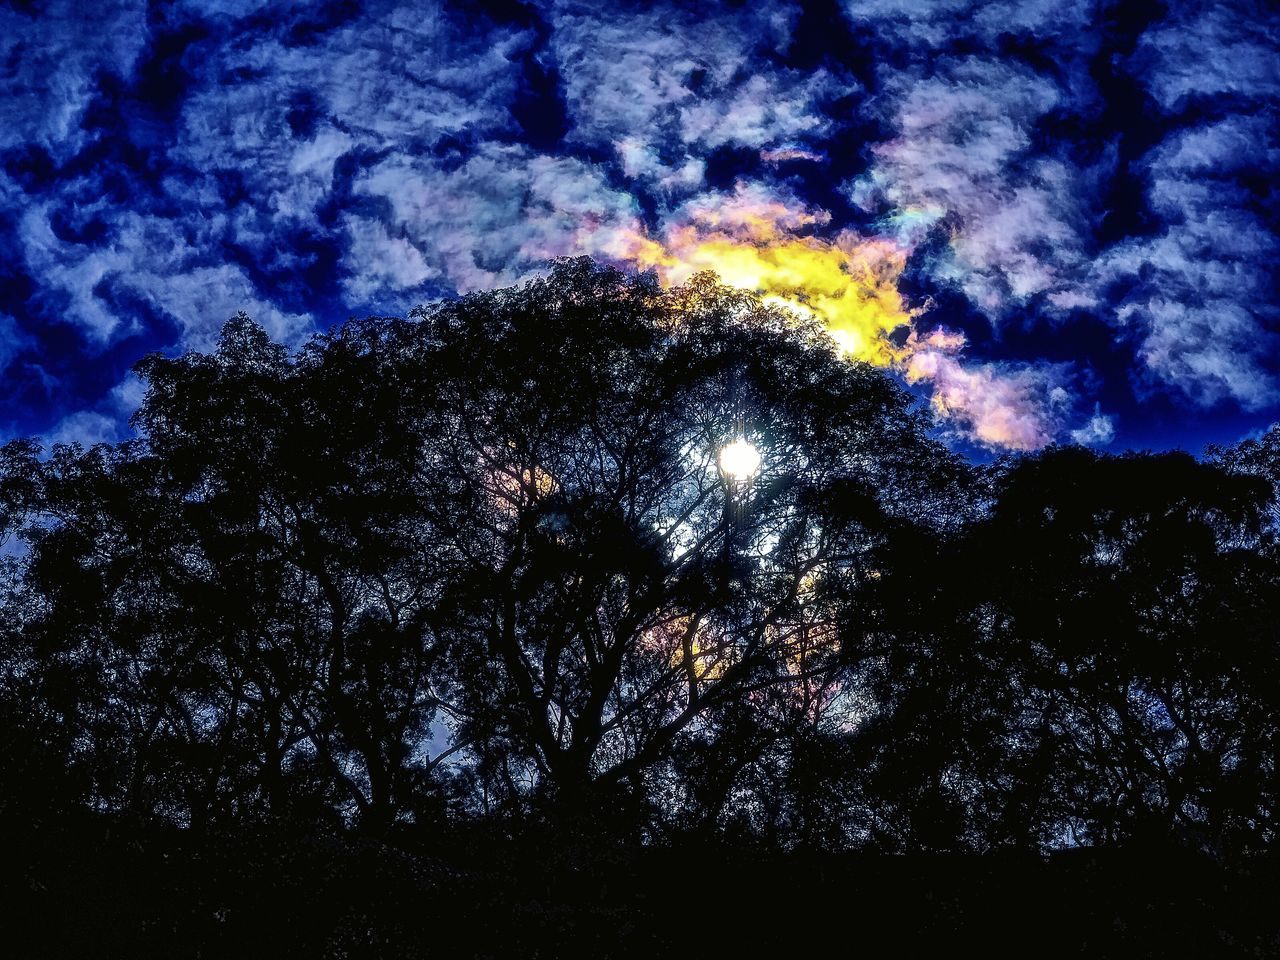 low angle view, night, sky, nature, beauty in nature, tranquility, outdoors, scenics, tree, no people, silhouette, tranquil scene, blue, cloud - sky, star - space, moon, astronomy, space, galaxy